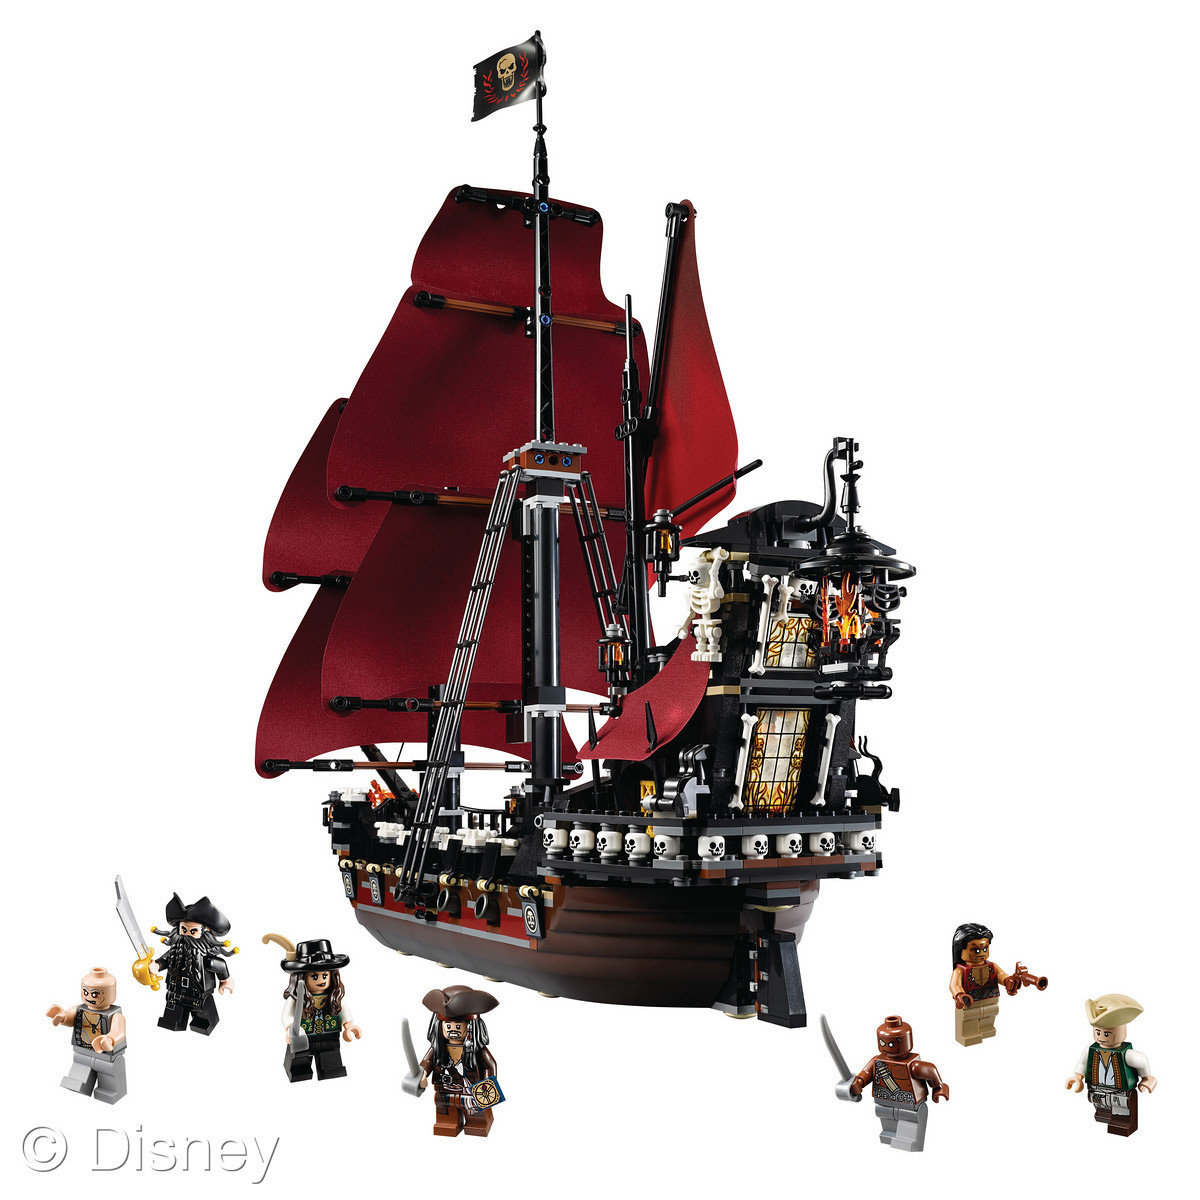 Toy Pirate Lego : Idle hands pre toy fair lego pirates of the